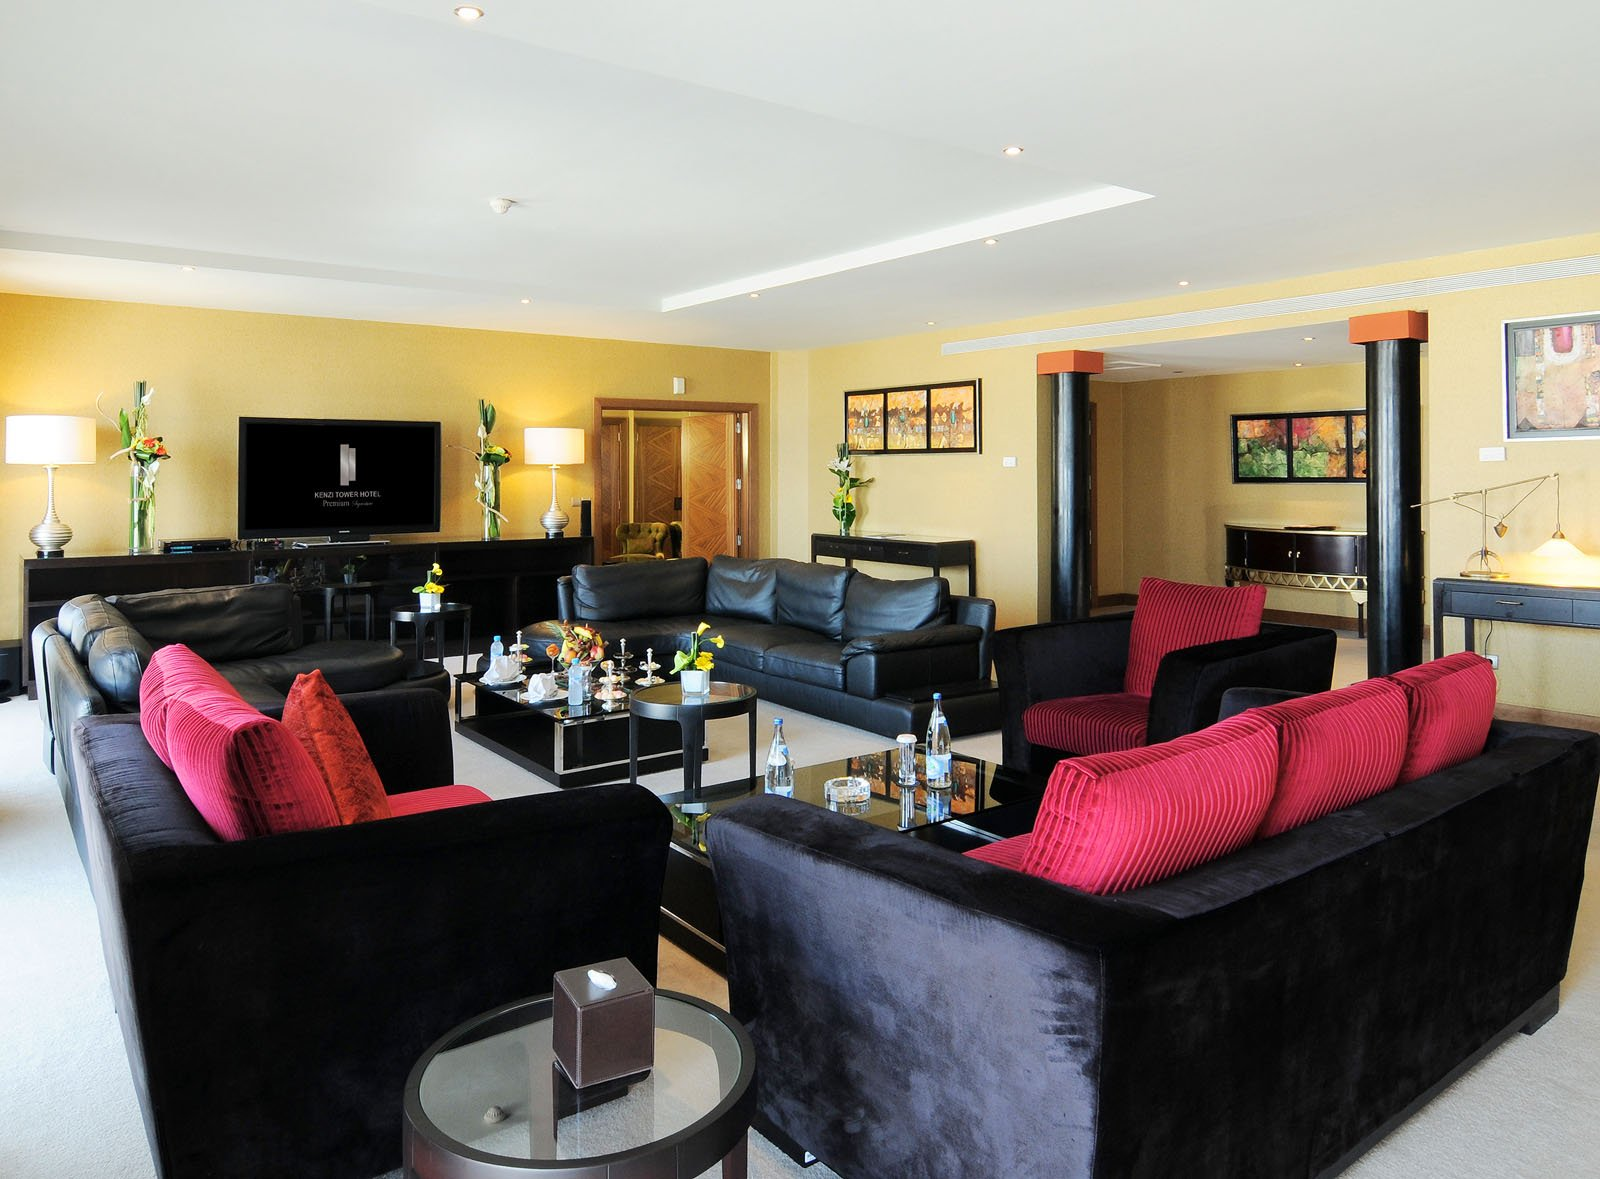 Presidential Suite at Kenzi Tower Hotel in central Casablanca, M